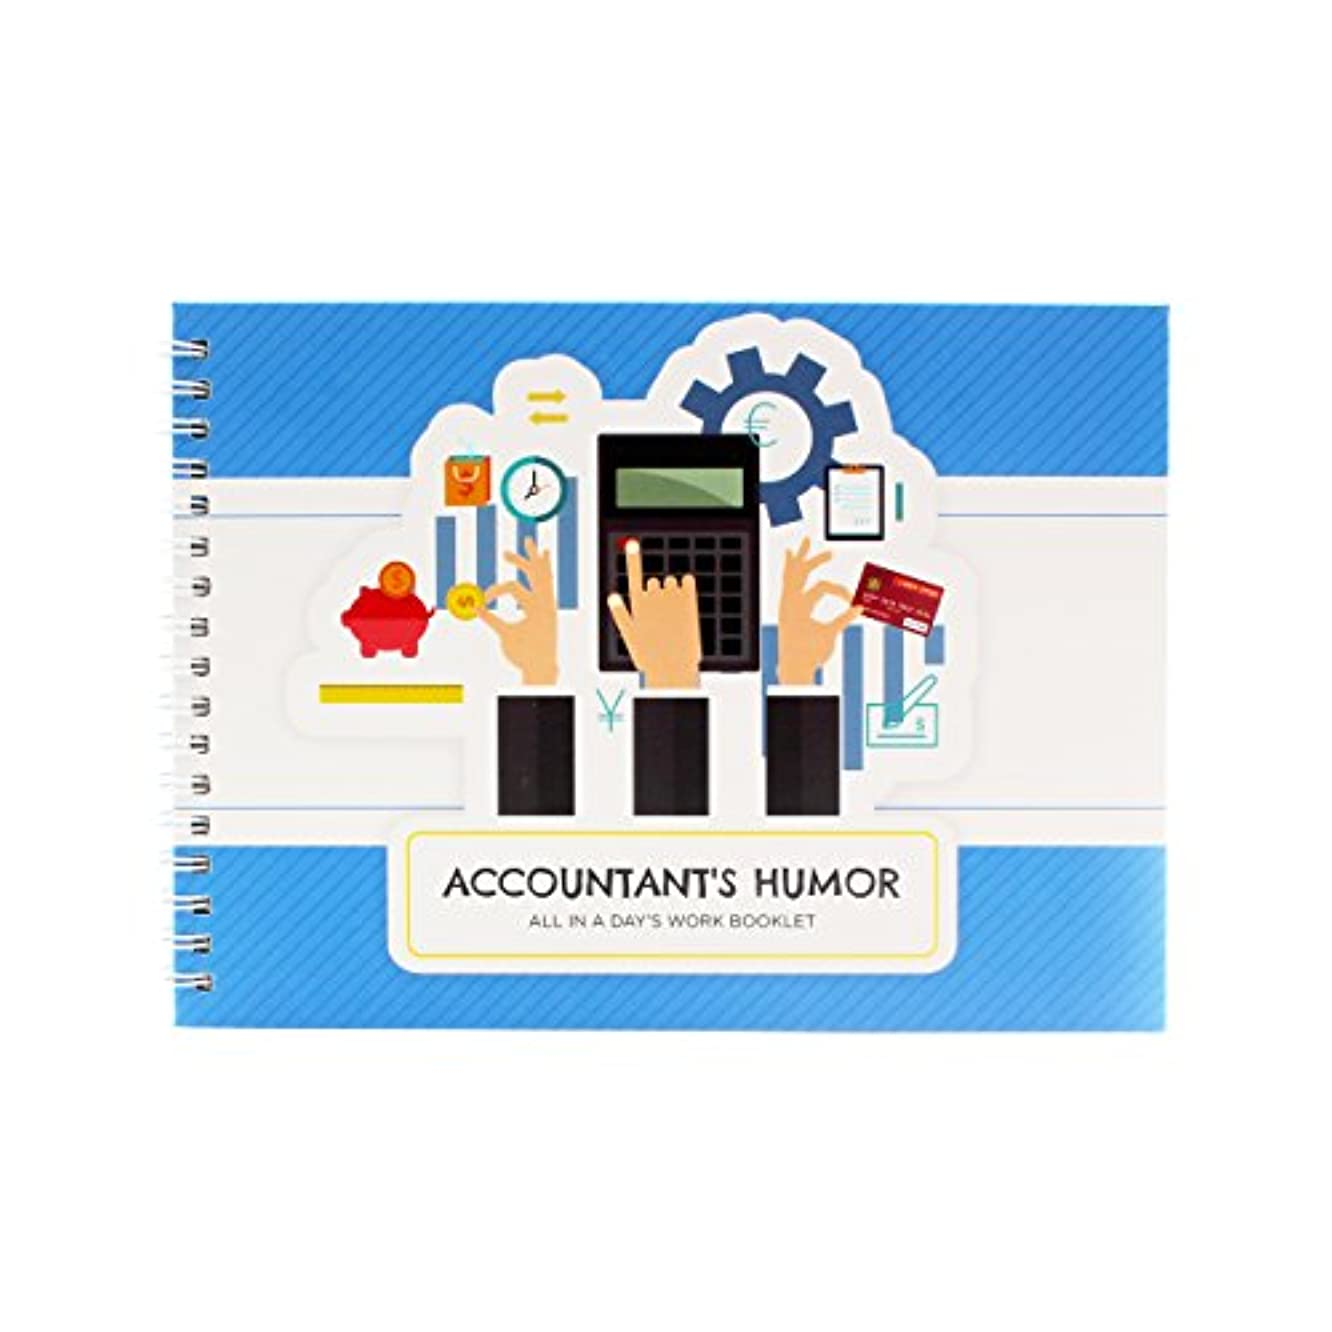 Original Accountant Gifts - Personalizable Humor Booklet With Matching Card For Your Favorite Auditor, Bookkeeper Or Cpa - Extremely Easy-to-fill And Thoughtful Gift Ideas for Colleague or Co-Worker